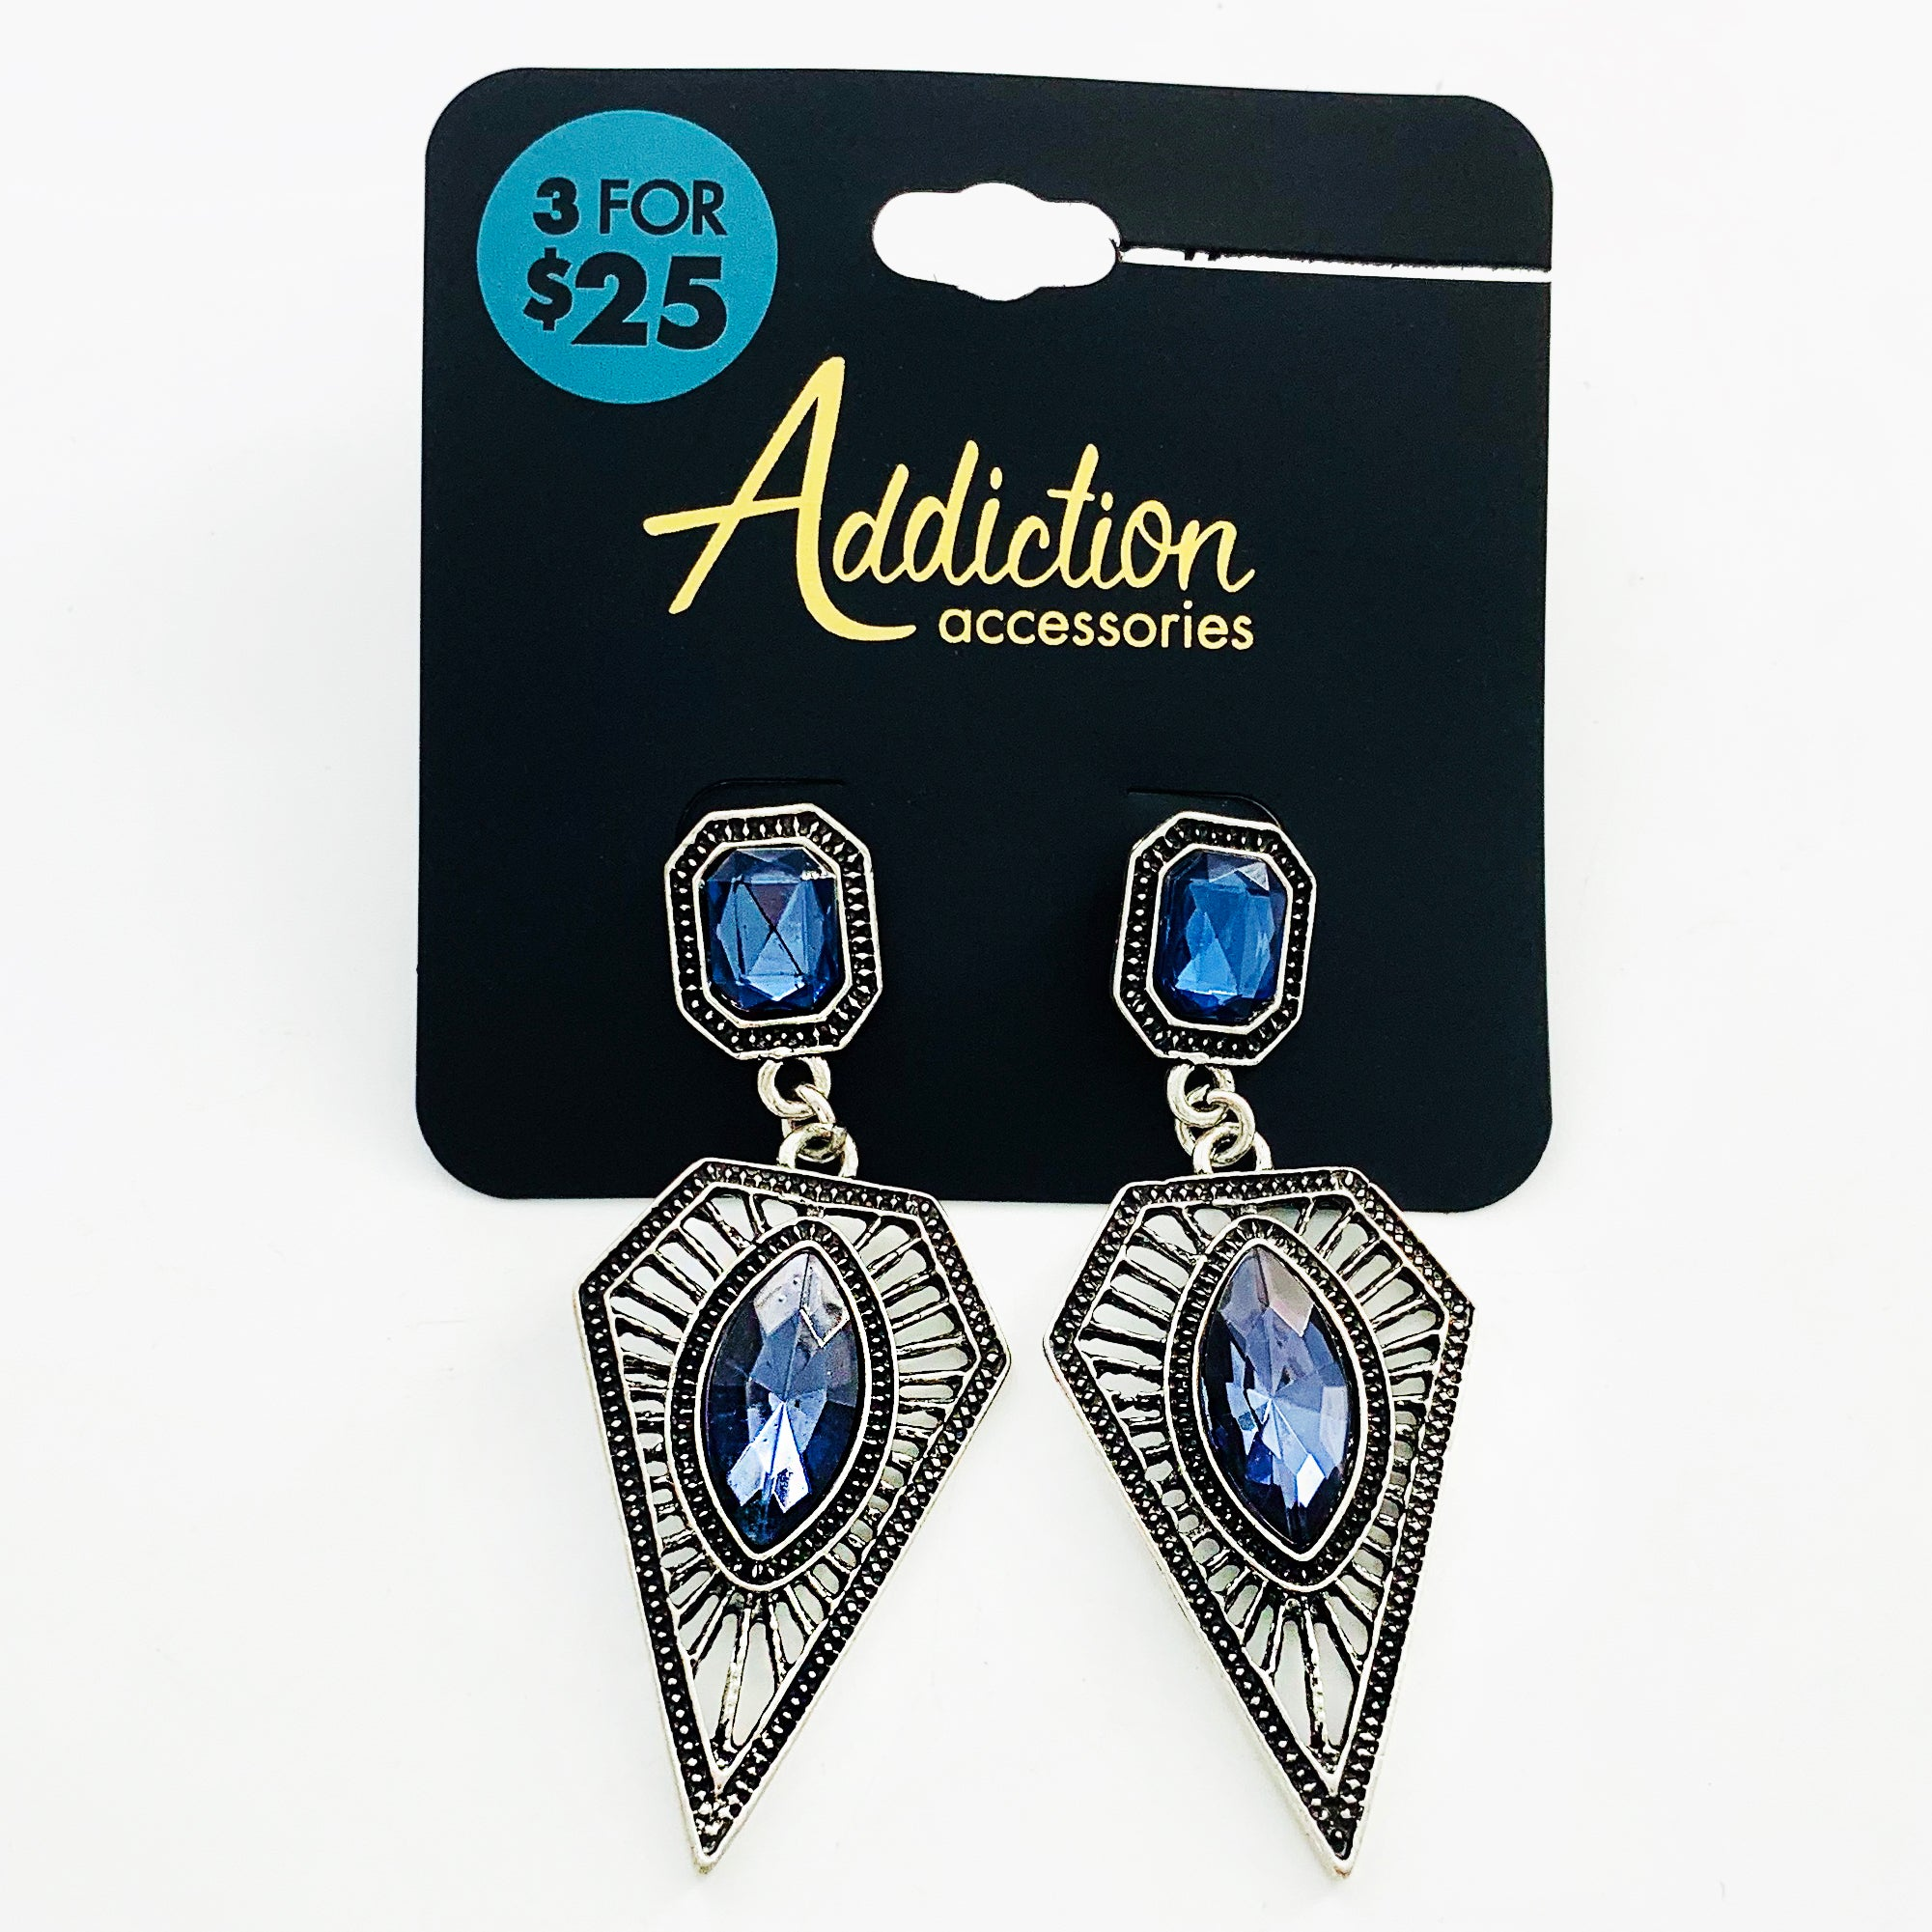 Art-deco inspired rustic silver earrings with blue gems